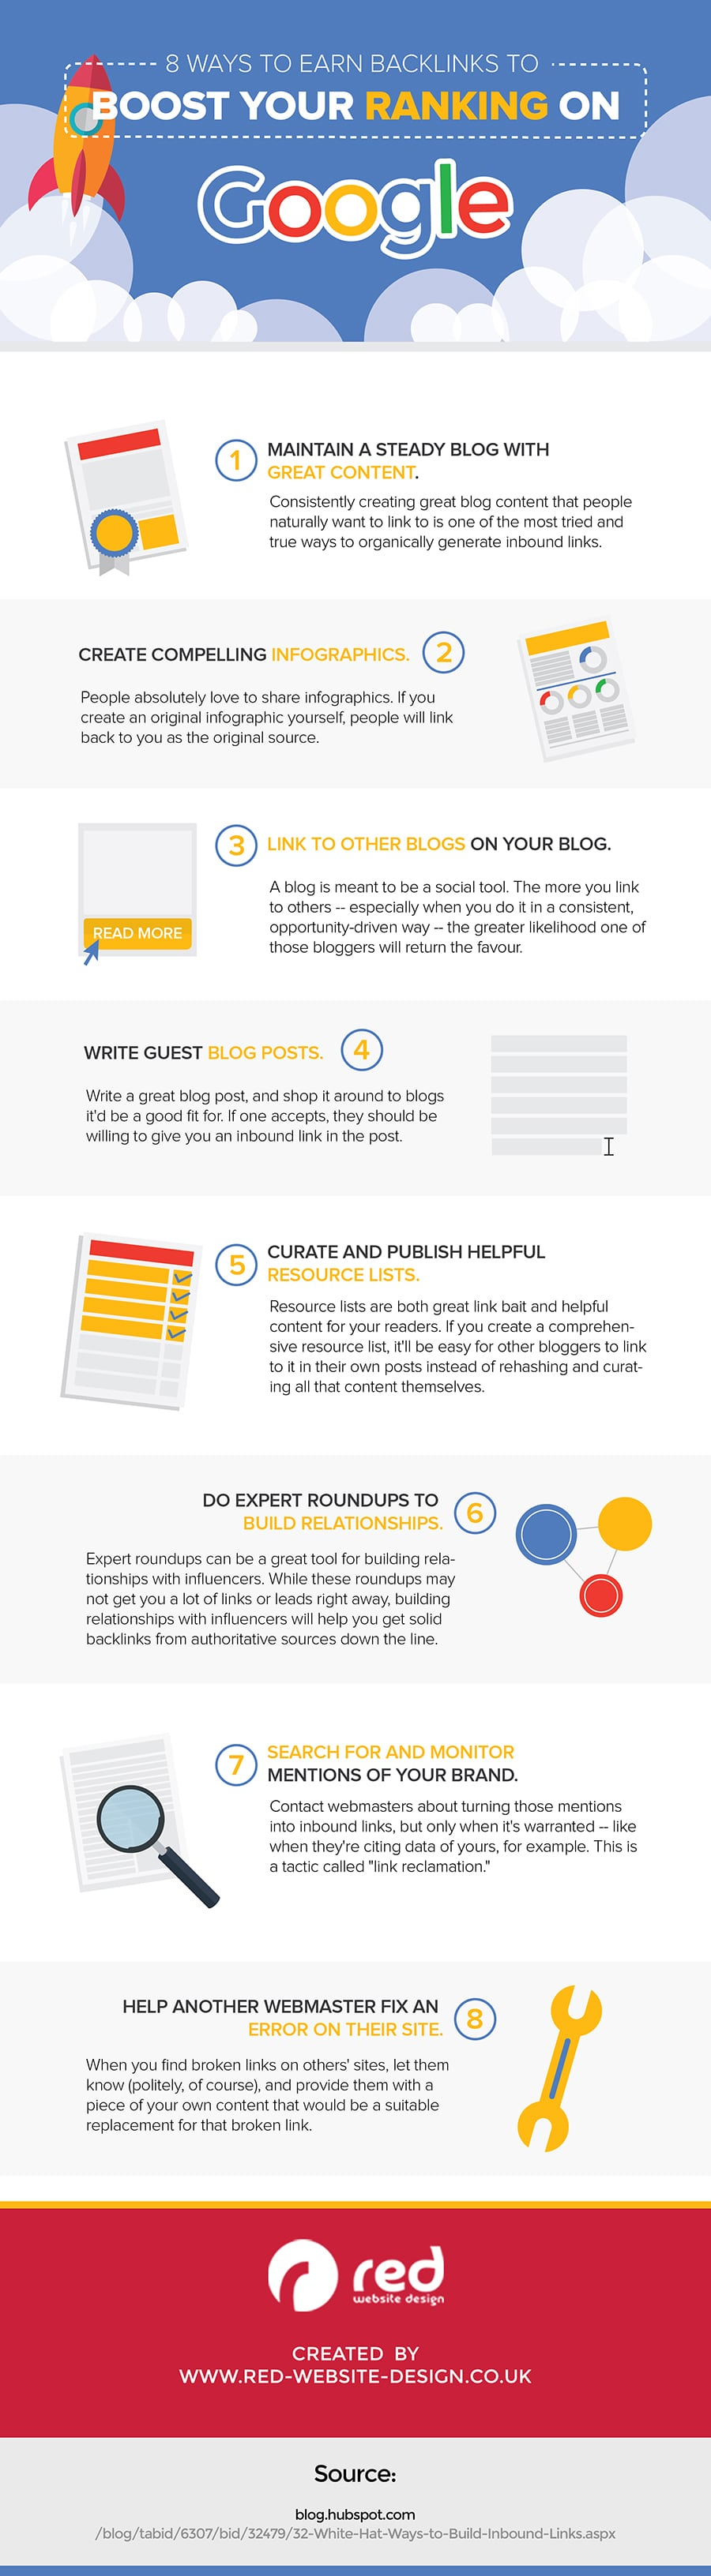 8 Ways to Earn Backlinks and Boost Your Ranking on Google [Infographic] | Social Media Today